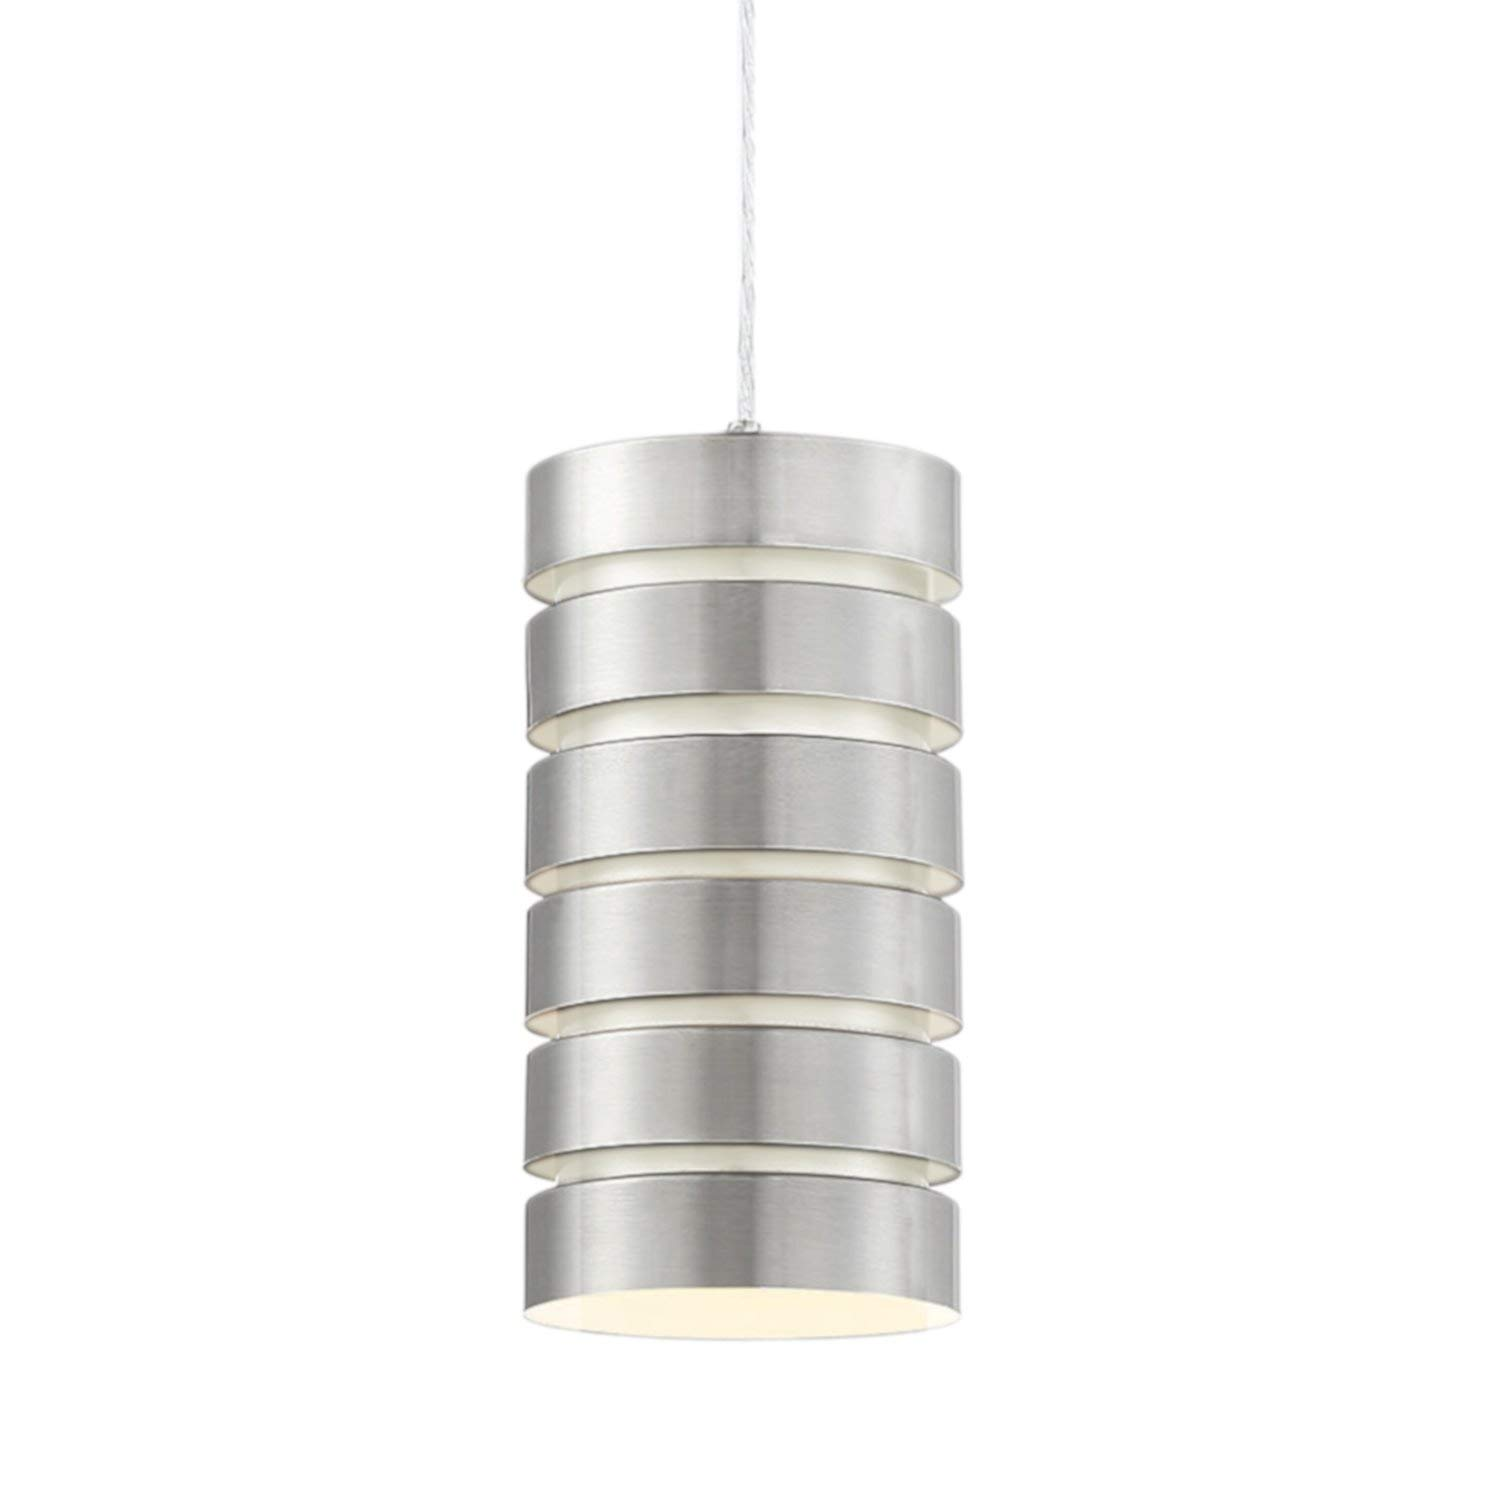 "Kira Home Aura 9.5"" Modern Industrial Pendant Light, Adjustable Wire Hanging Lamp, Brushed Nickel Steel"